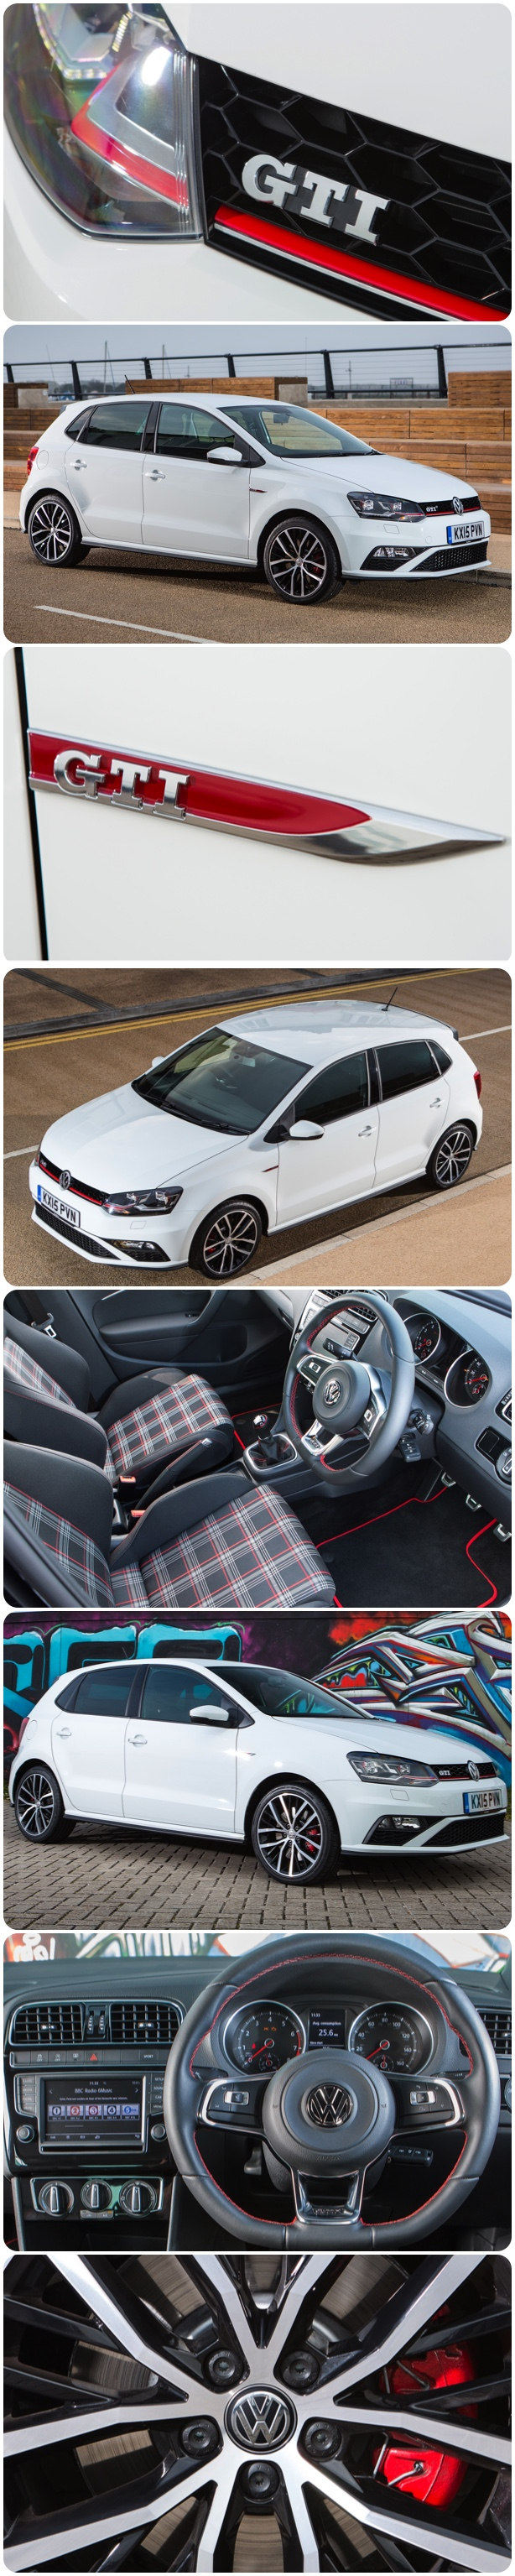 Volkswagen Polo GTI Review Pinterest